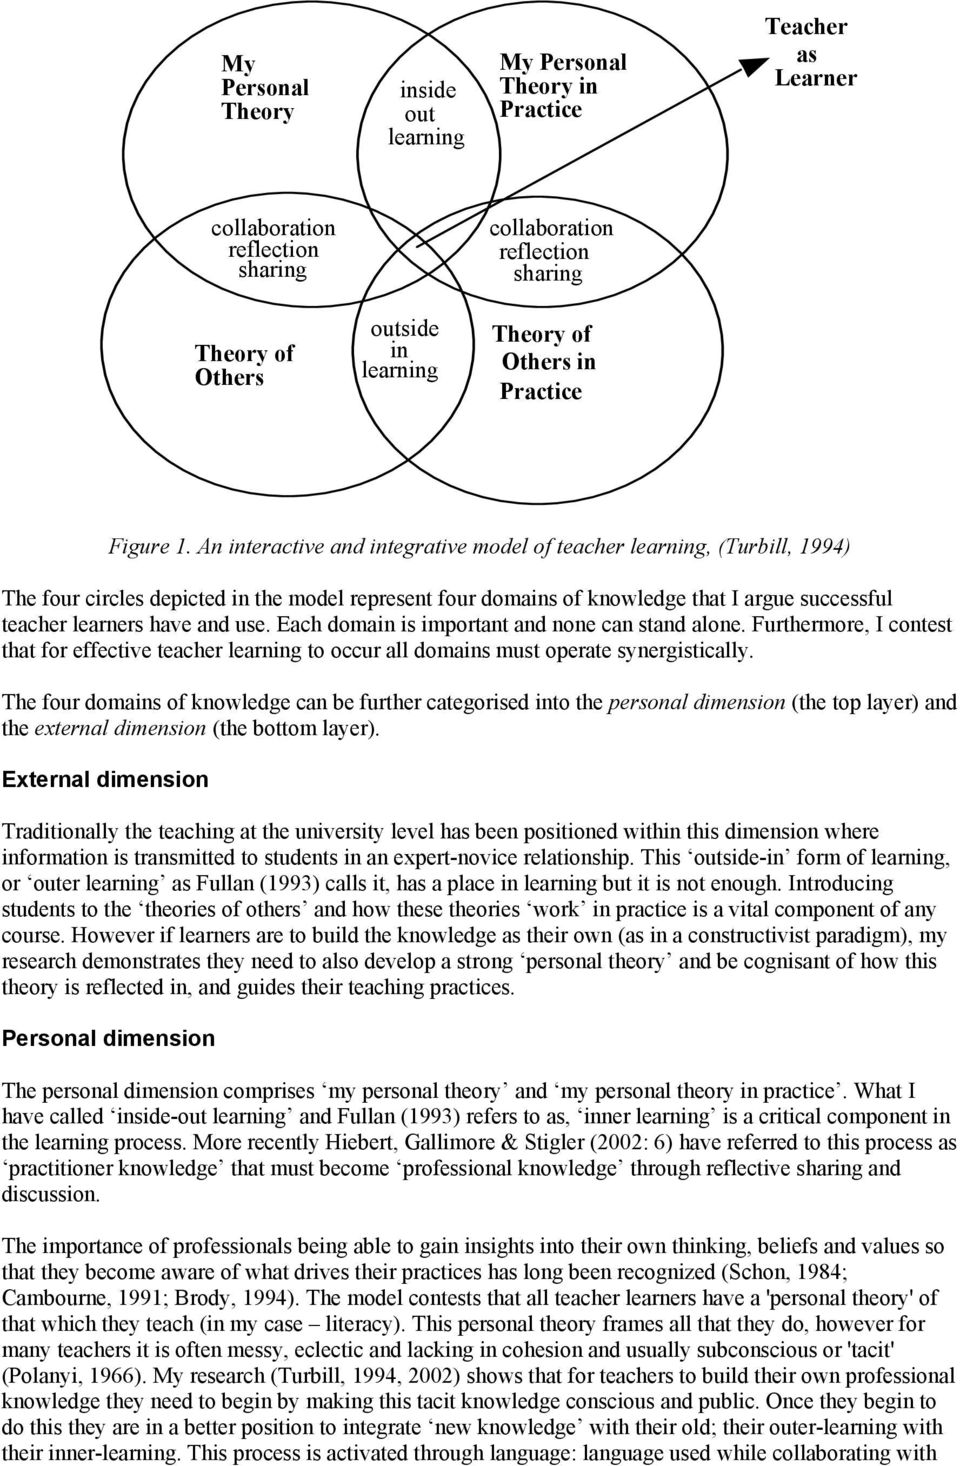 An interactive and integrative model of teacher learning, (Turbill, 1994) The four circles depicted in the model represent four domains of knowledge that I argue successful teacher learners have and